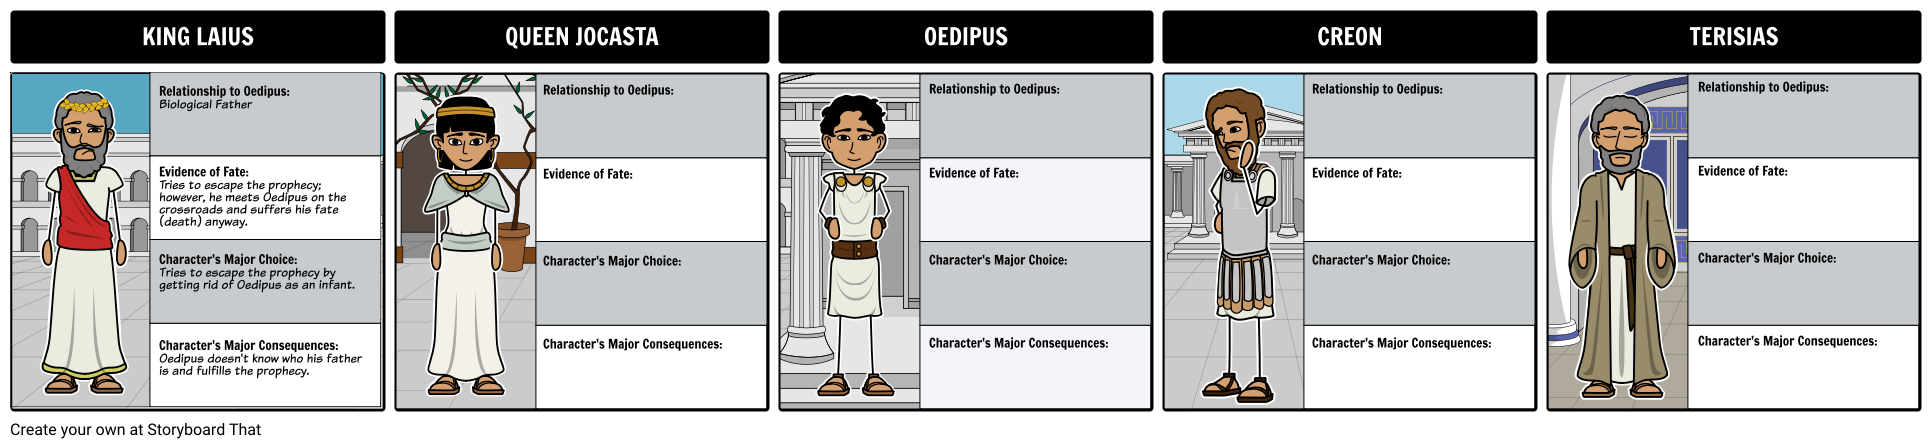 Oedipus - Character Map